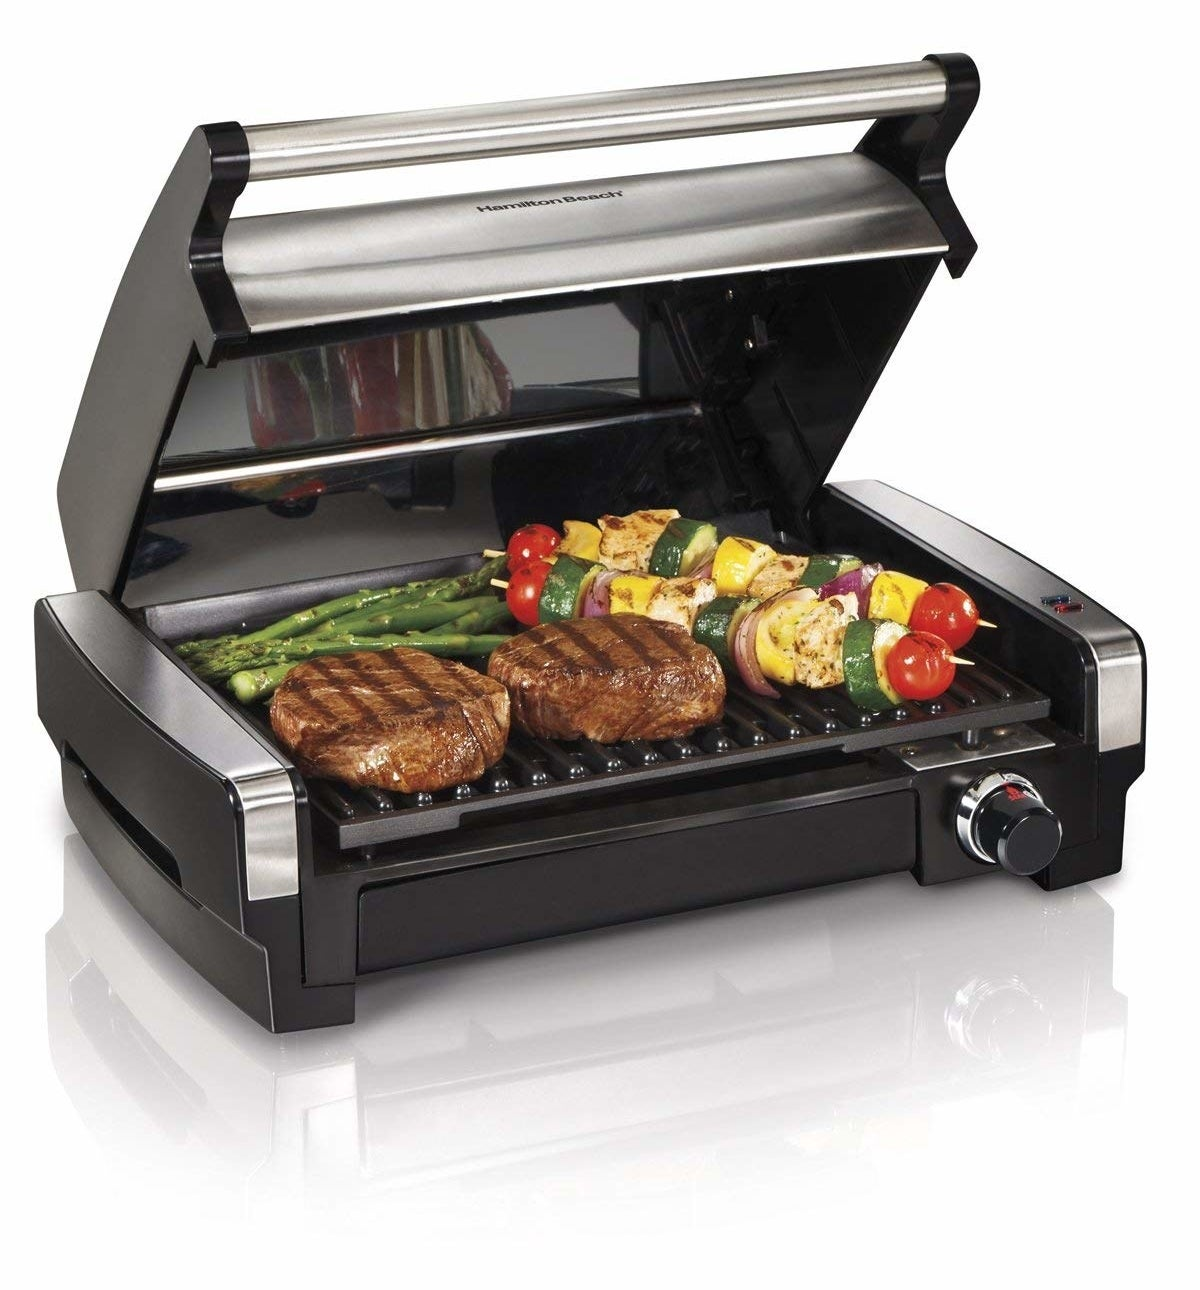 Small portable grill with two steaks, two kababs, and some asparagus being cooked